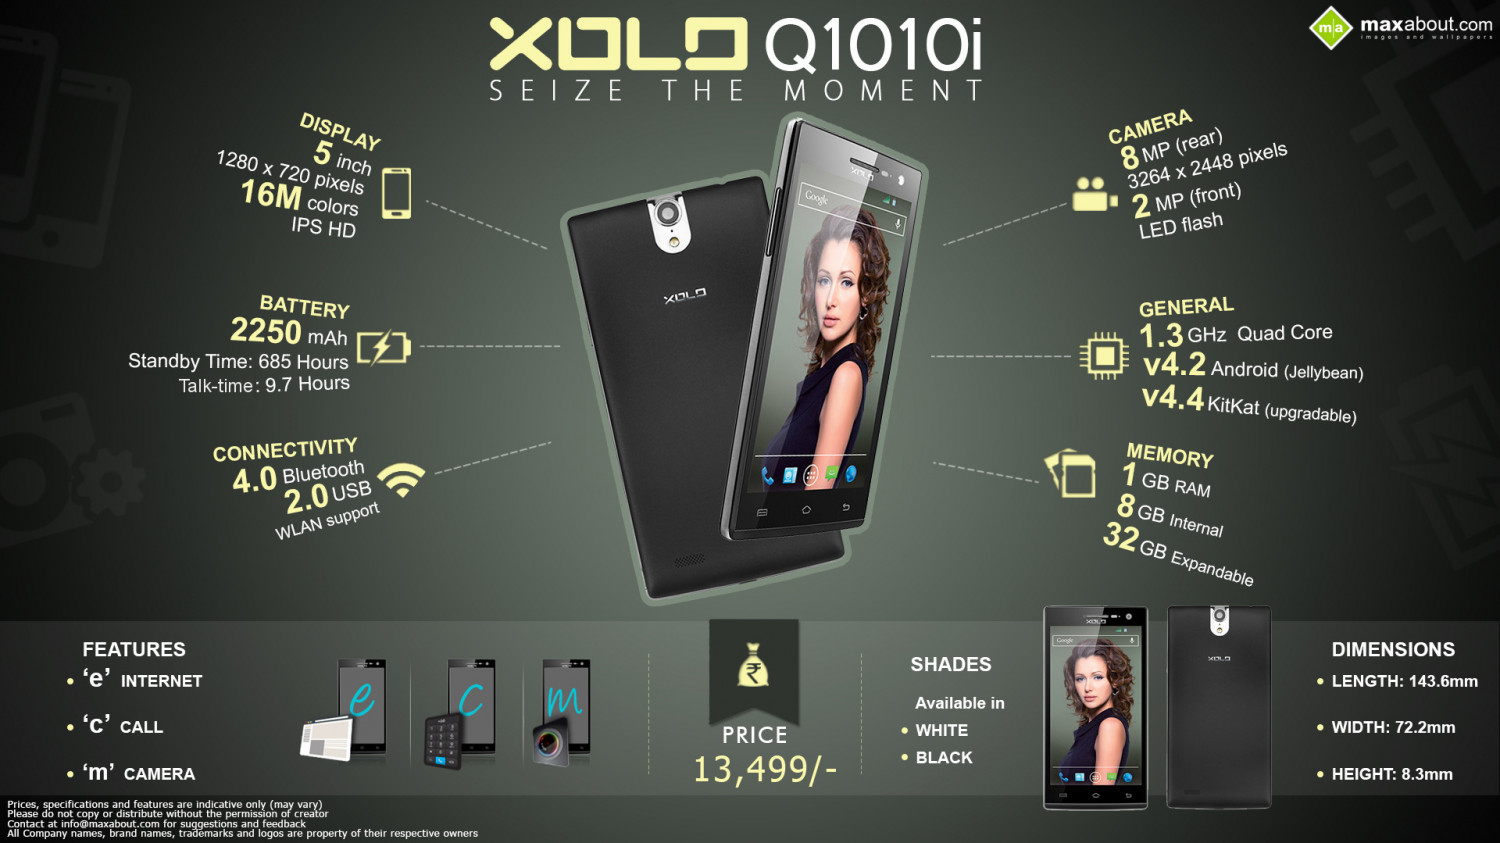 Xolo Q1010i Android smartphone - Seize the Moment Infographic